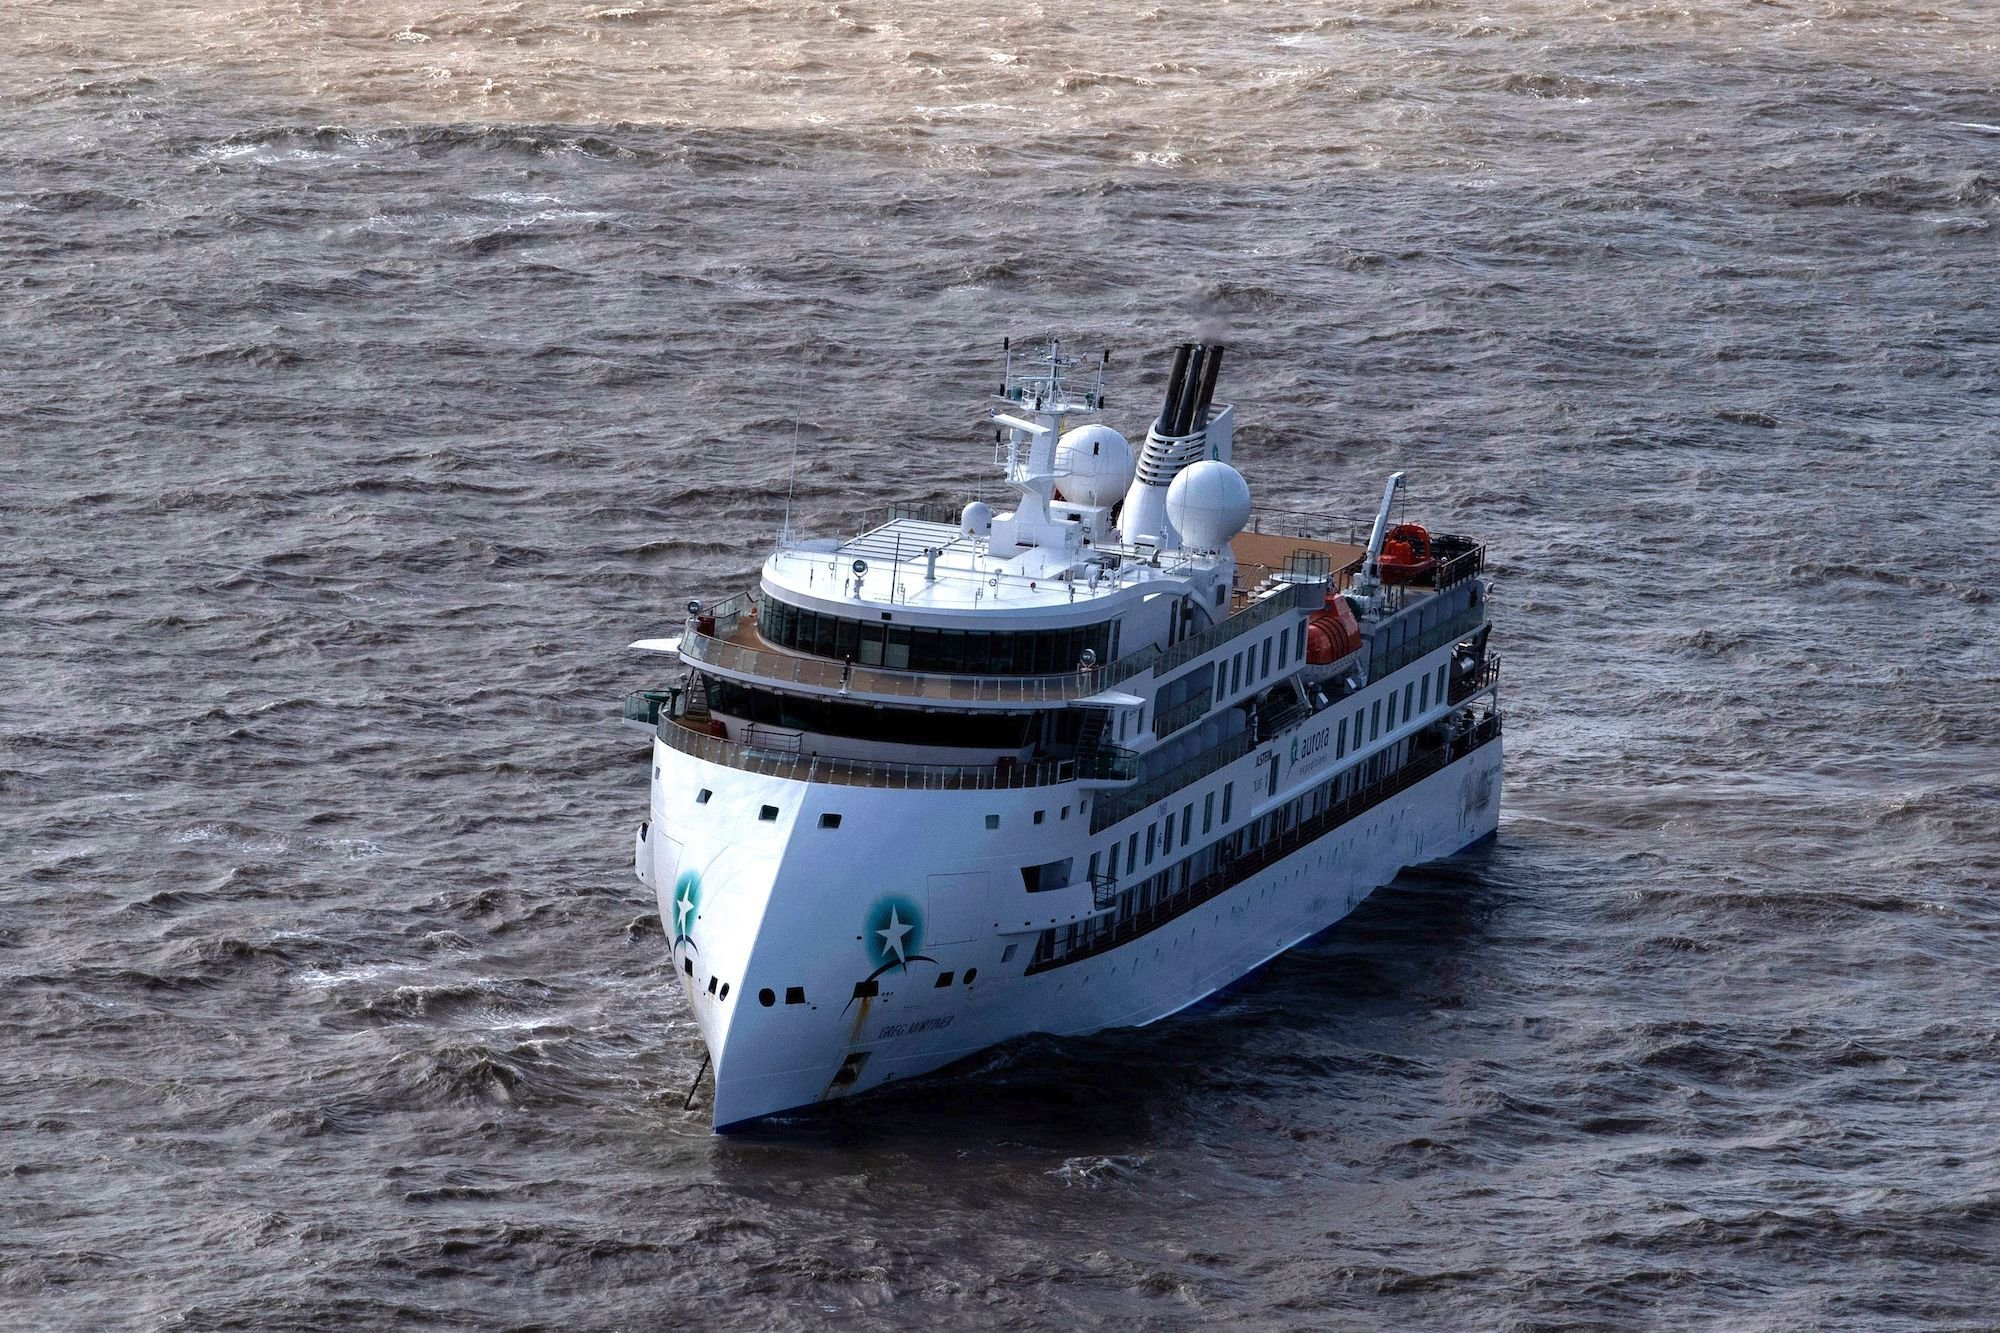 The Greg Mortimer, a cruise liner operated by Australia's Aurora Expeditions, departed March 15 on a voyage to Antarctica and South Georgia. Since the beginning of April, however, the ship has been stuck off the coast of Uruguay, after authorities refused to allow passengers to disembark due to the risk of coronavirus. (Pablo Porciuncula/AFP via Getty Images)